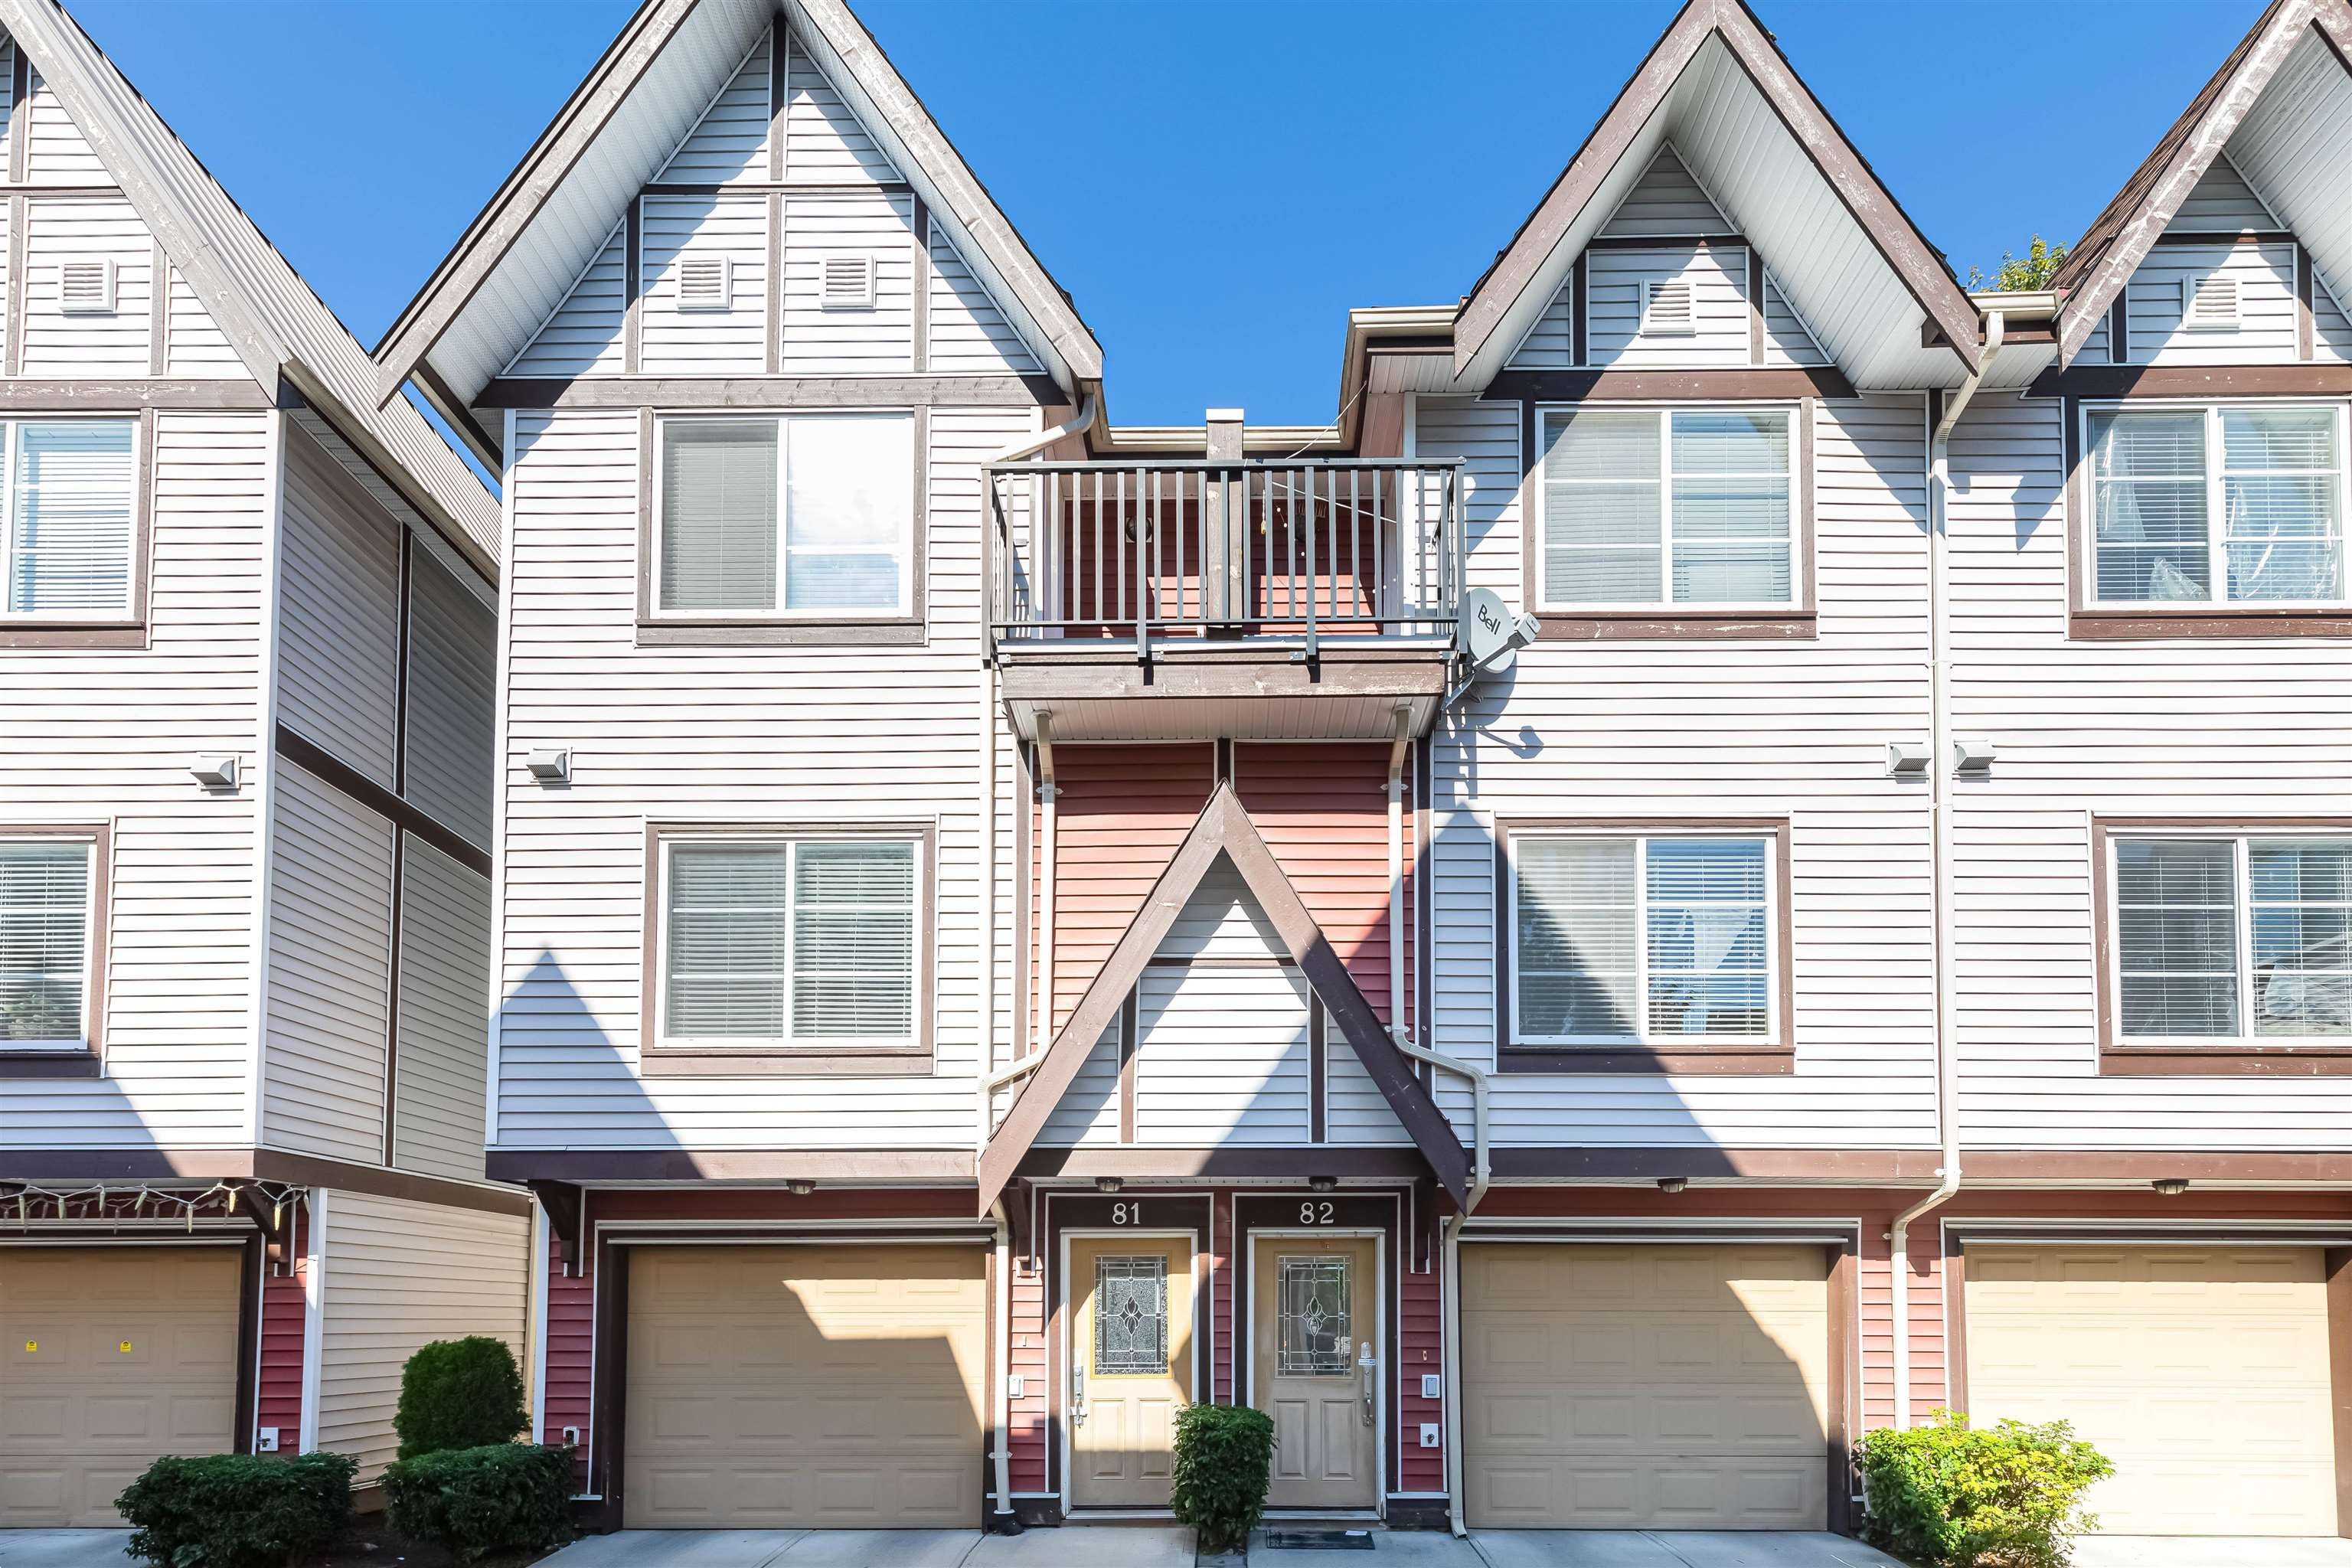 Main Photo: 82 9405 121 Street in Surrey: Queen Mary Park Surrey Townhouse for sale : MLS®# R2621339